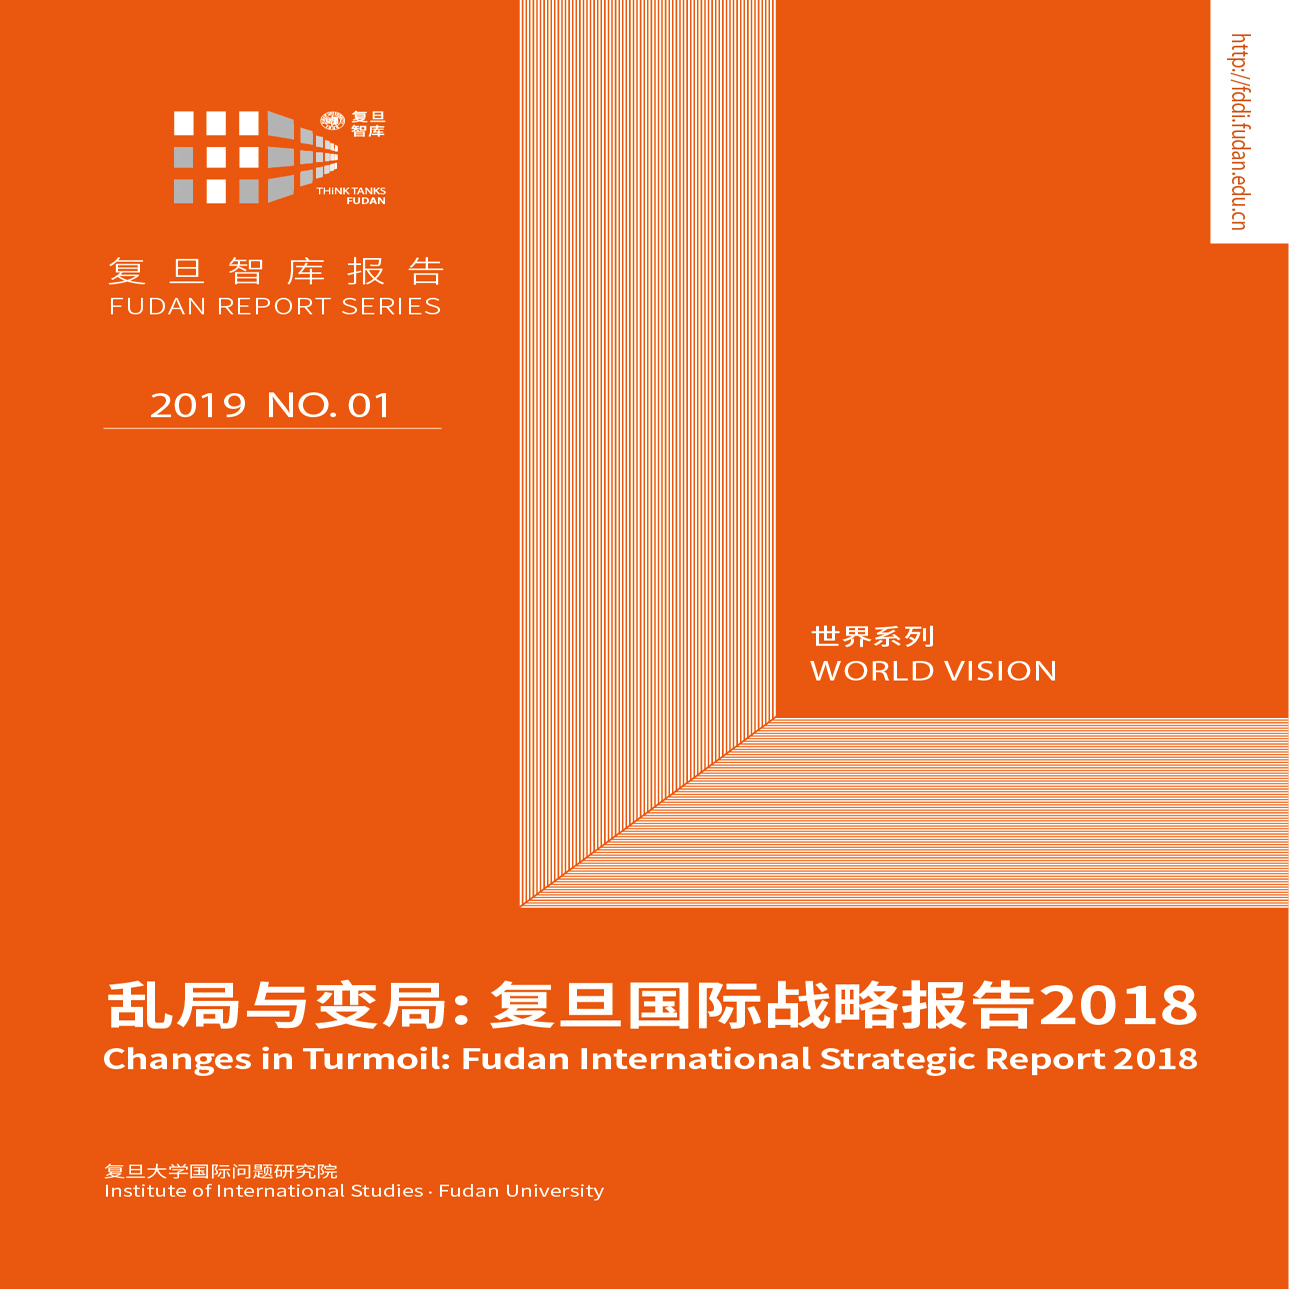 Changes in Turmoil:Fudan International Strategic Report 2018